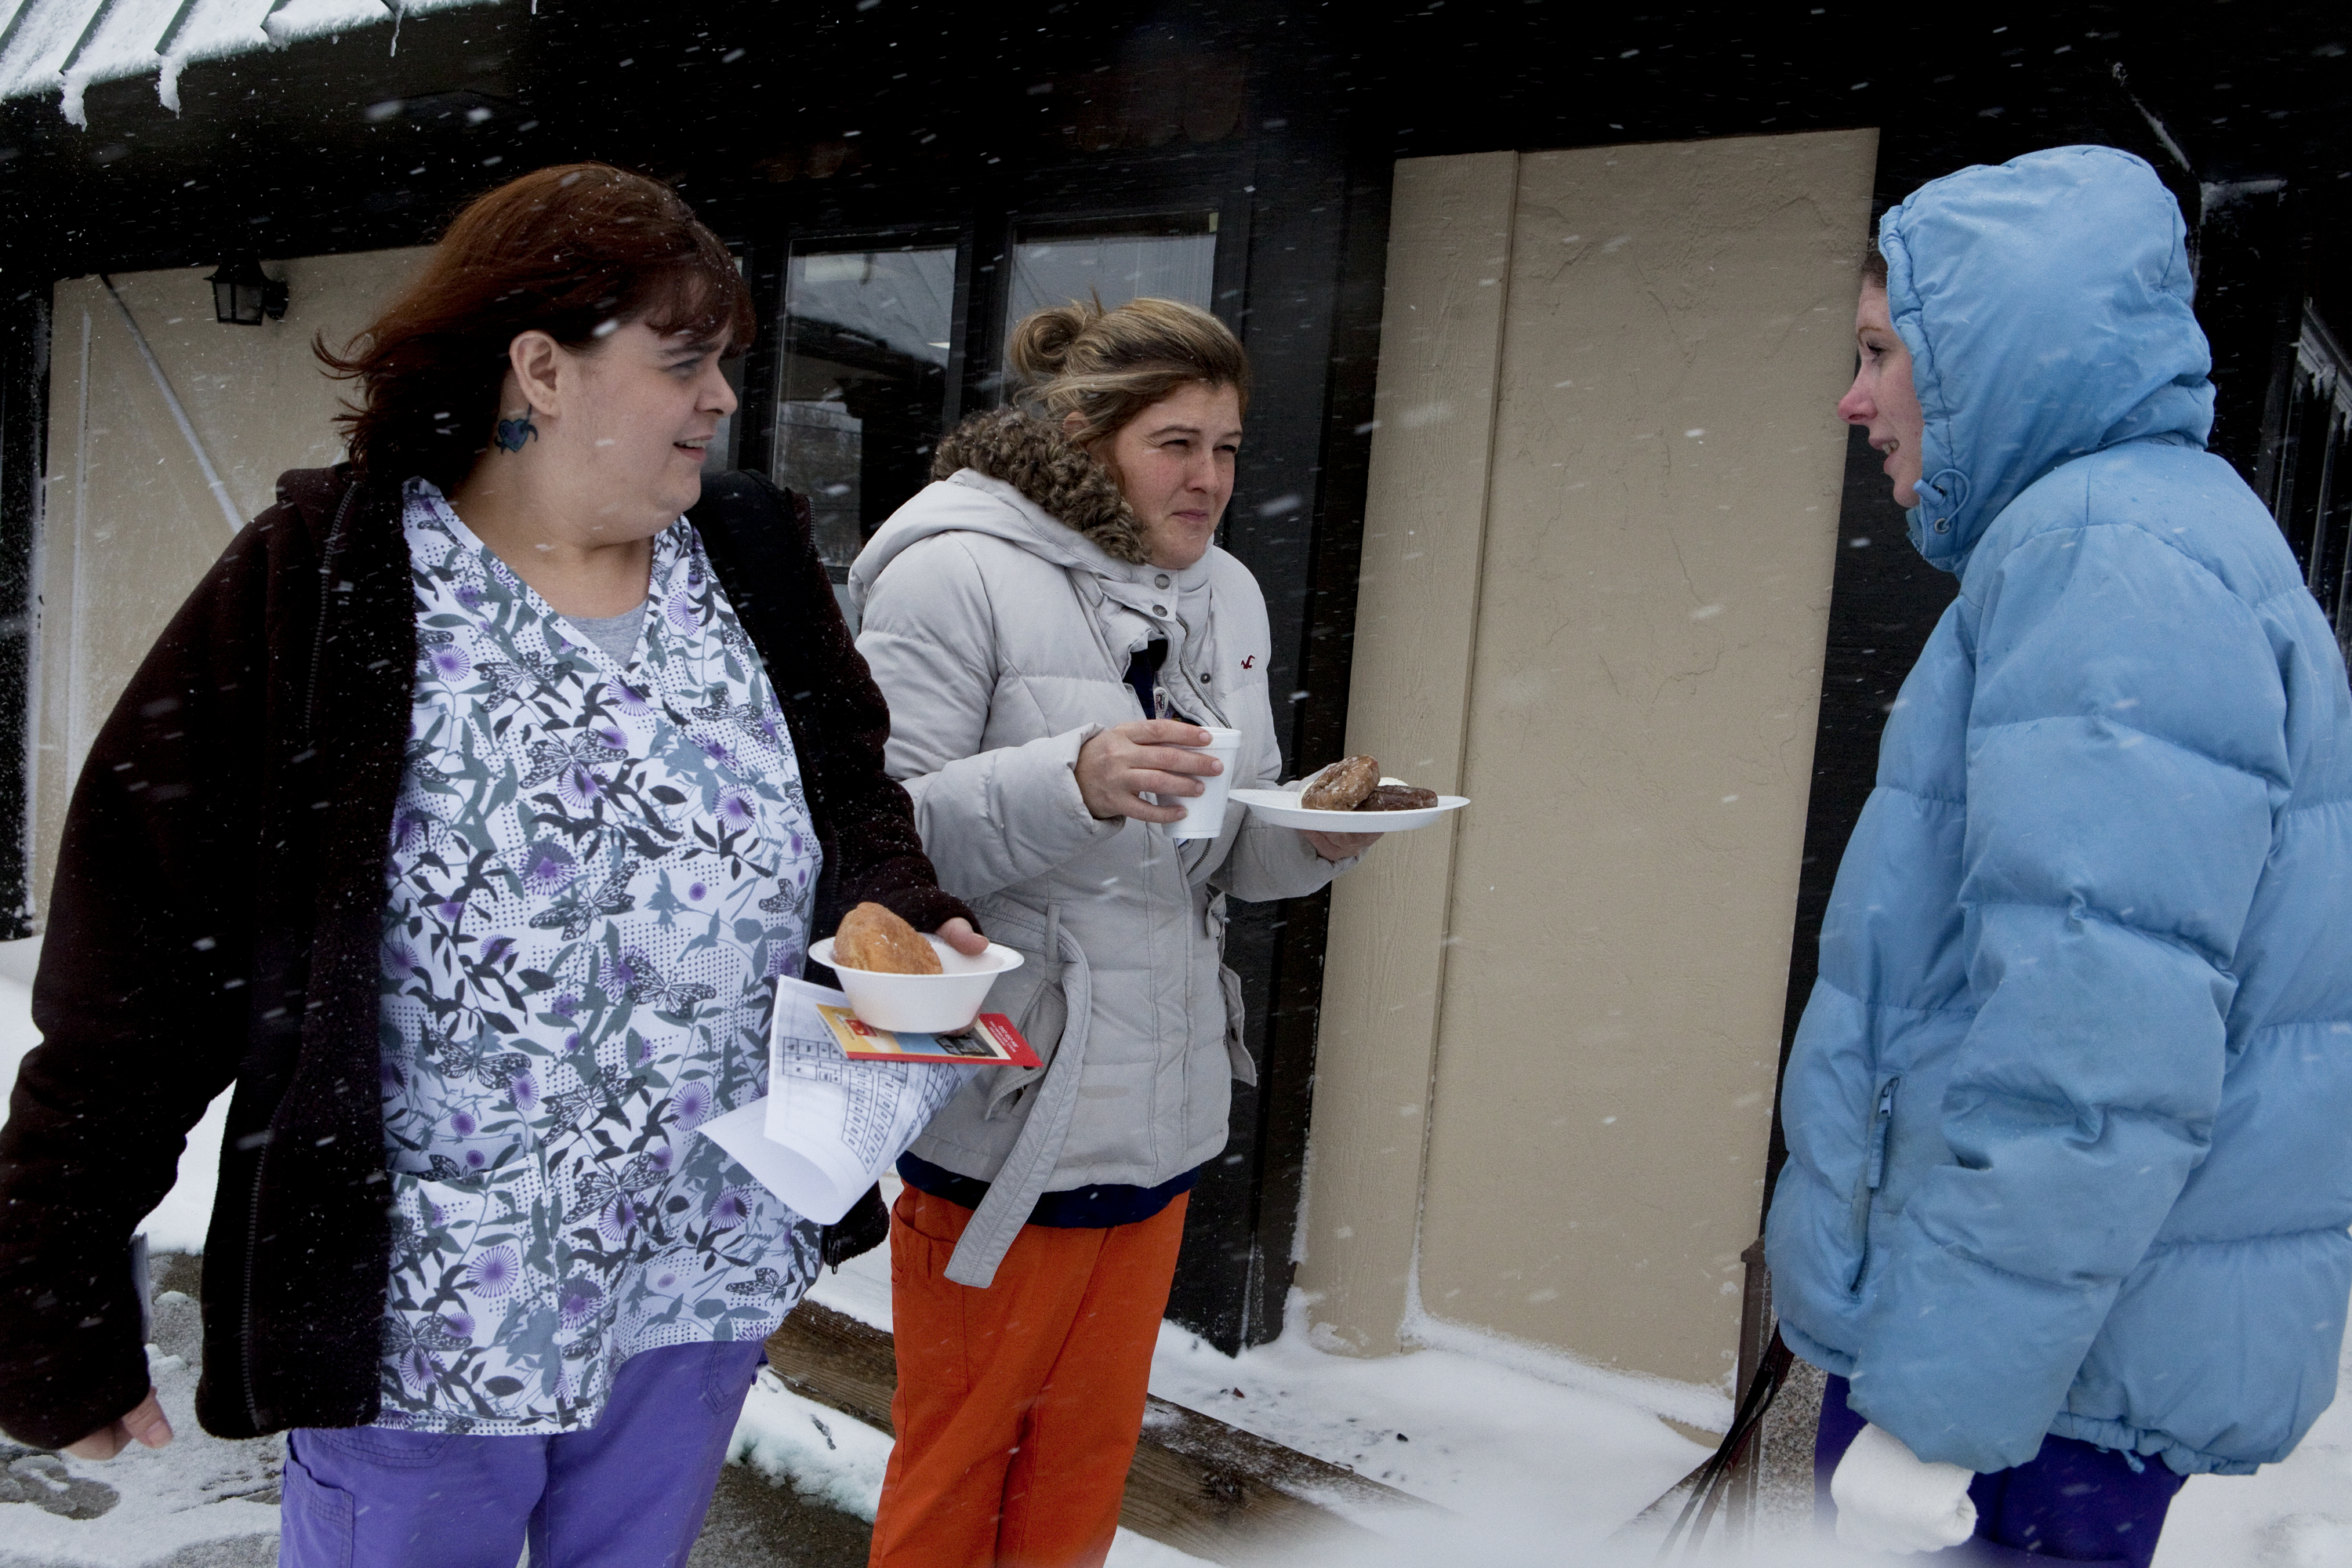 Tabatha Whitt, Hollie Acora and Erin Dowman, nurses at Raleigh General Hospital in Beckley, talk outside of a hotel where they stayed overnight to avoid driving in the heavy snow.